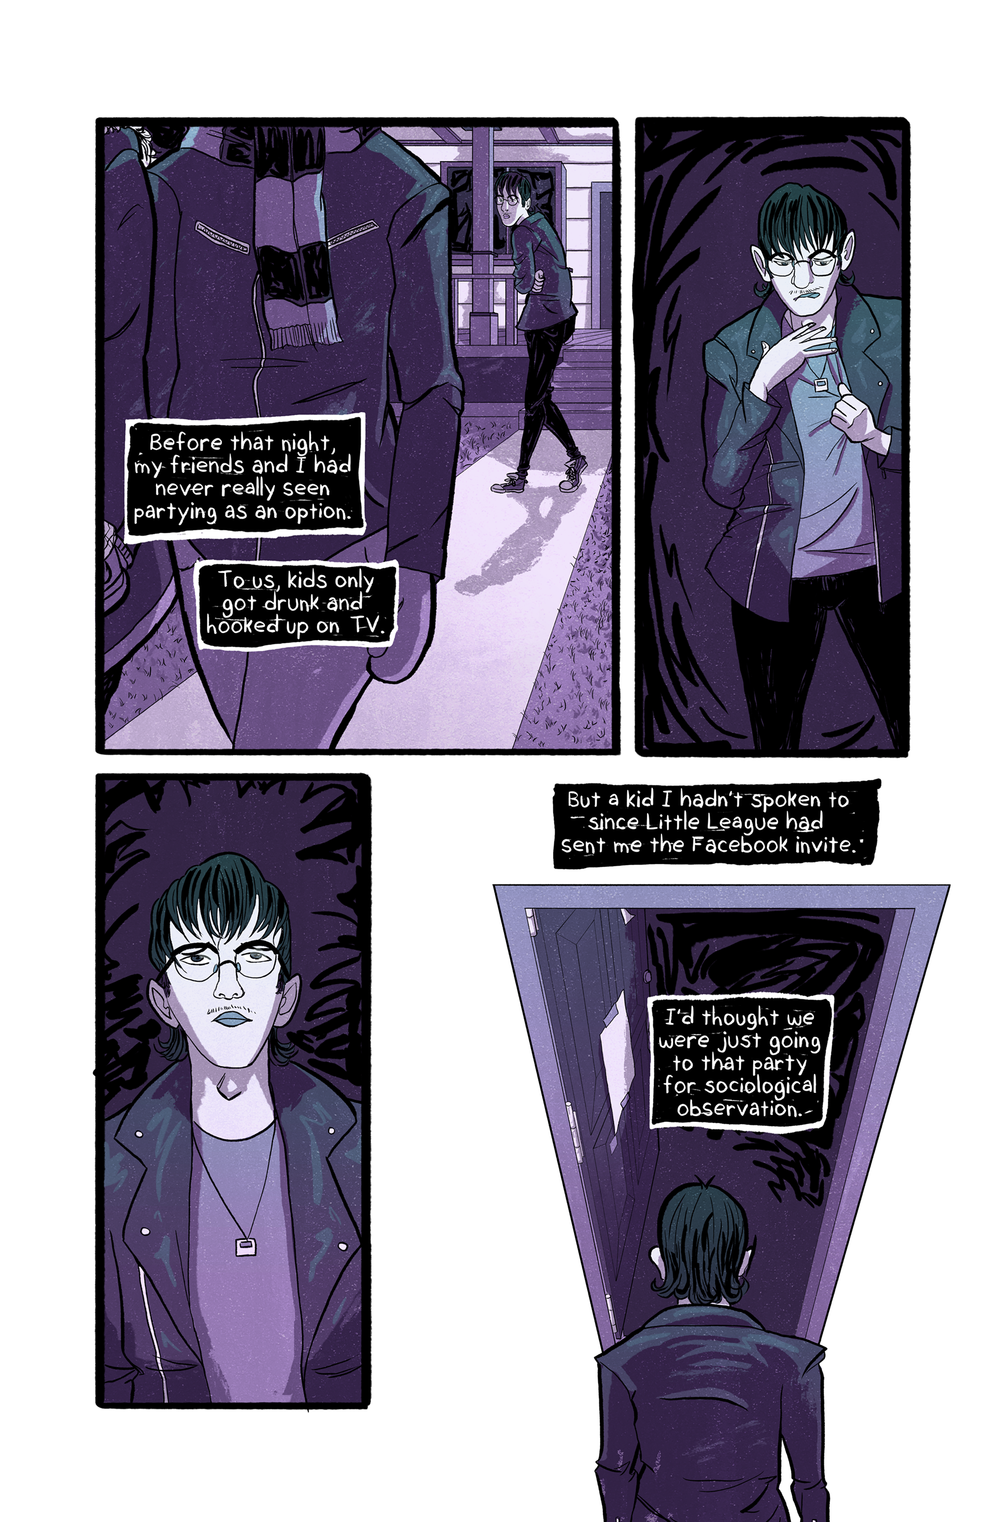 02untitled sad gay boy comic - page 03.png